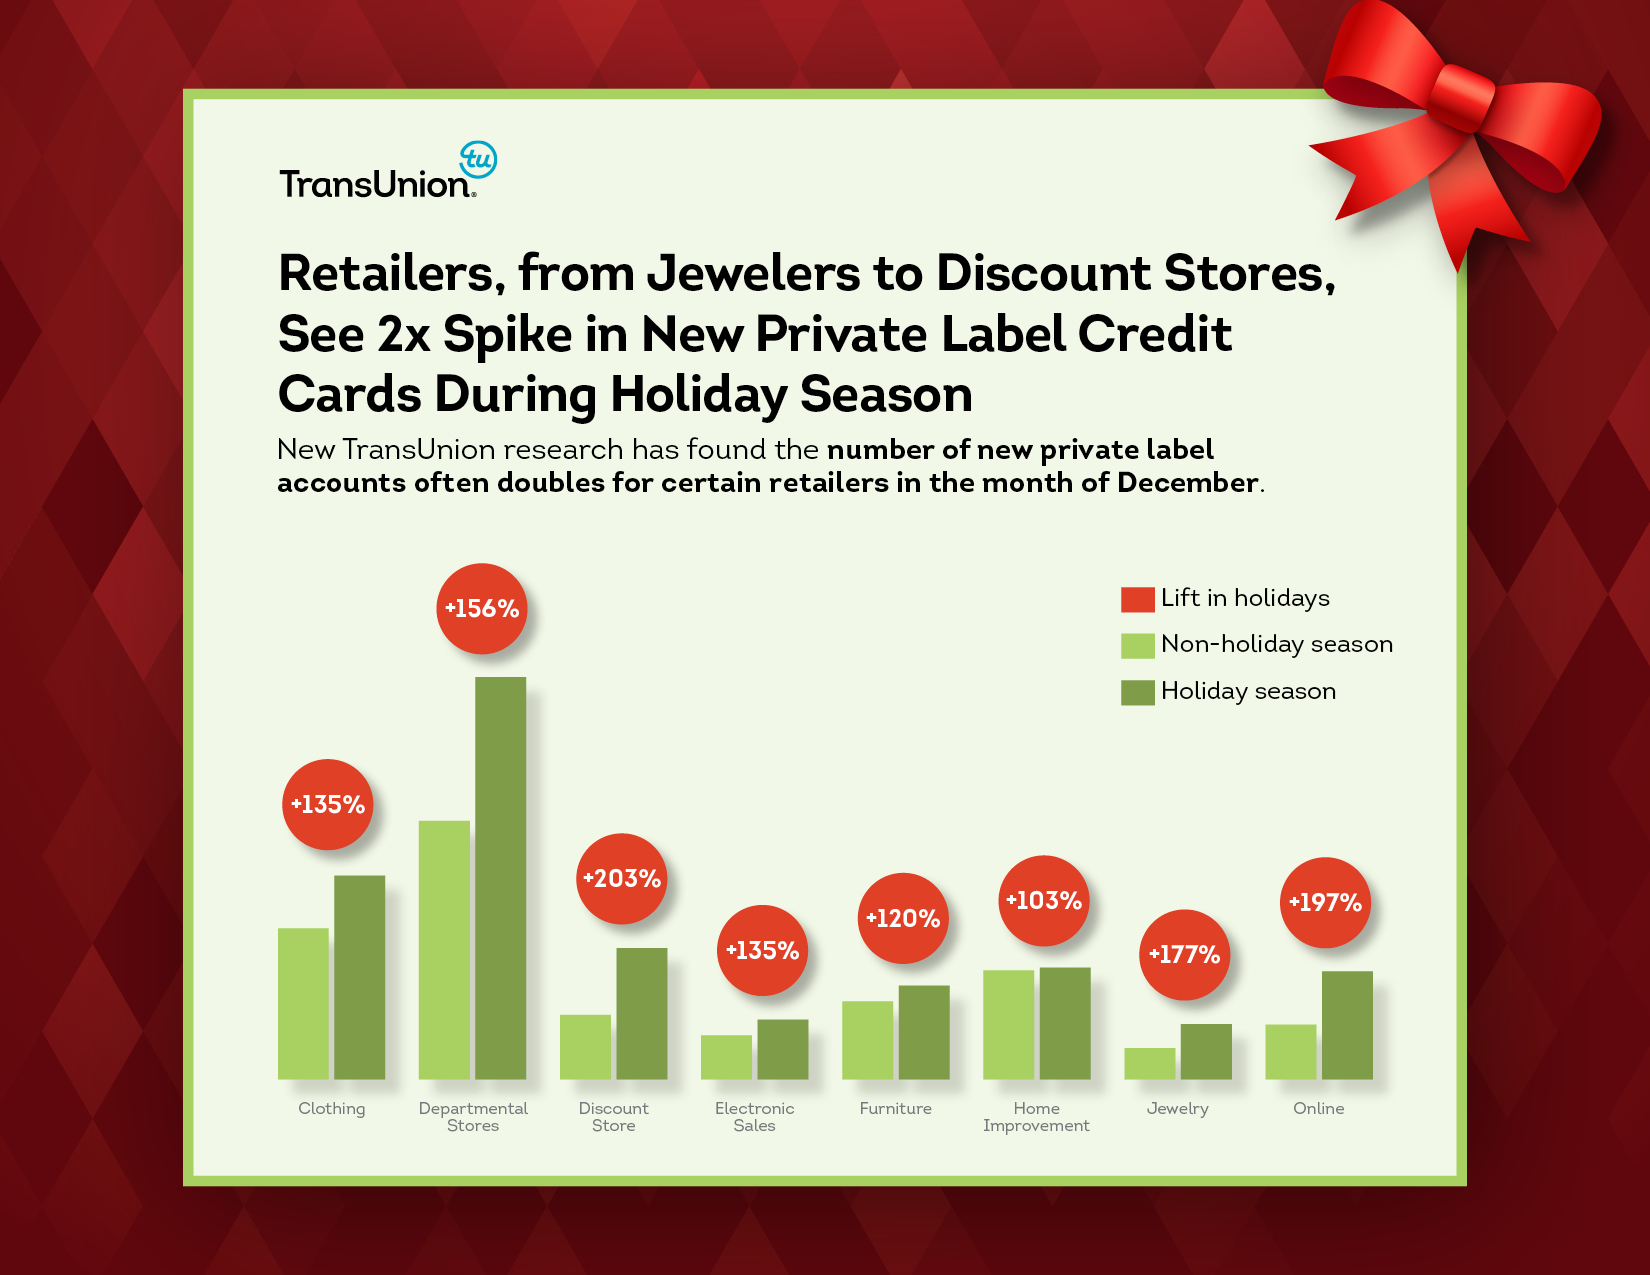 Retailers From Jewelers To Discount Stores See 2x Spike In New